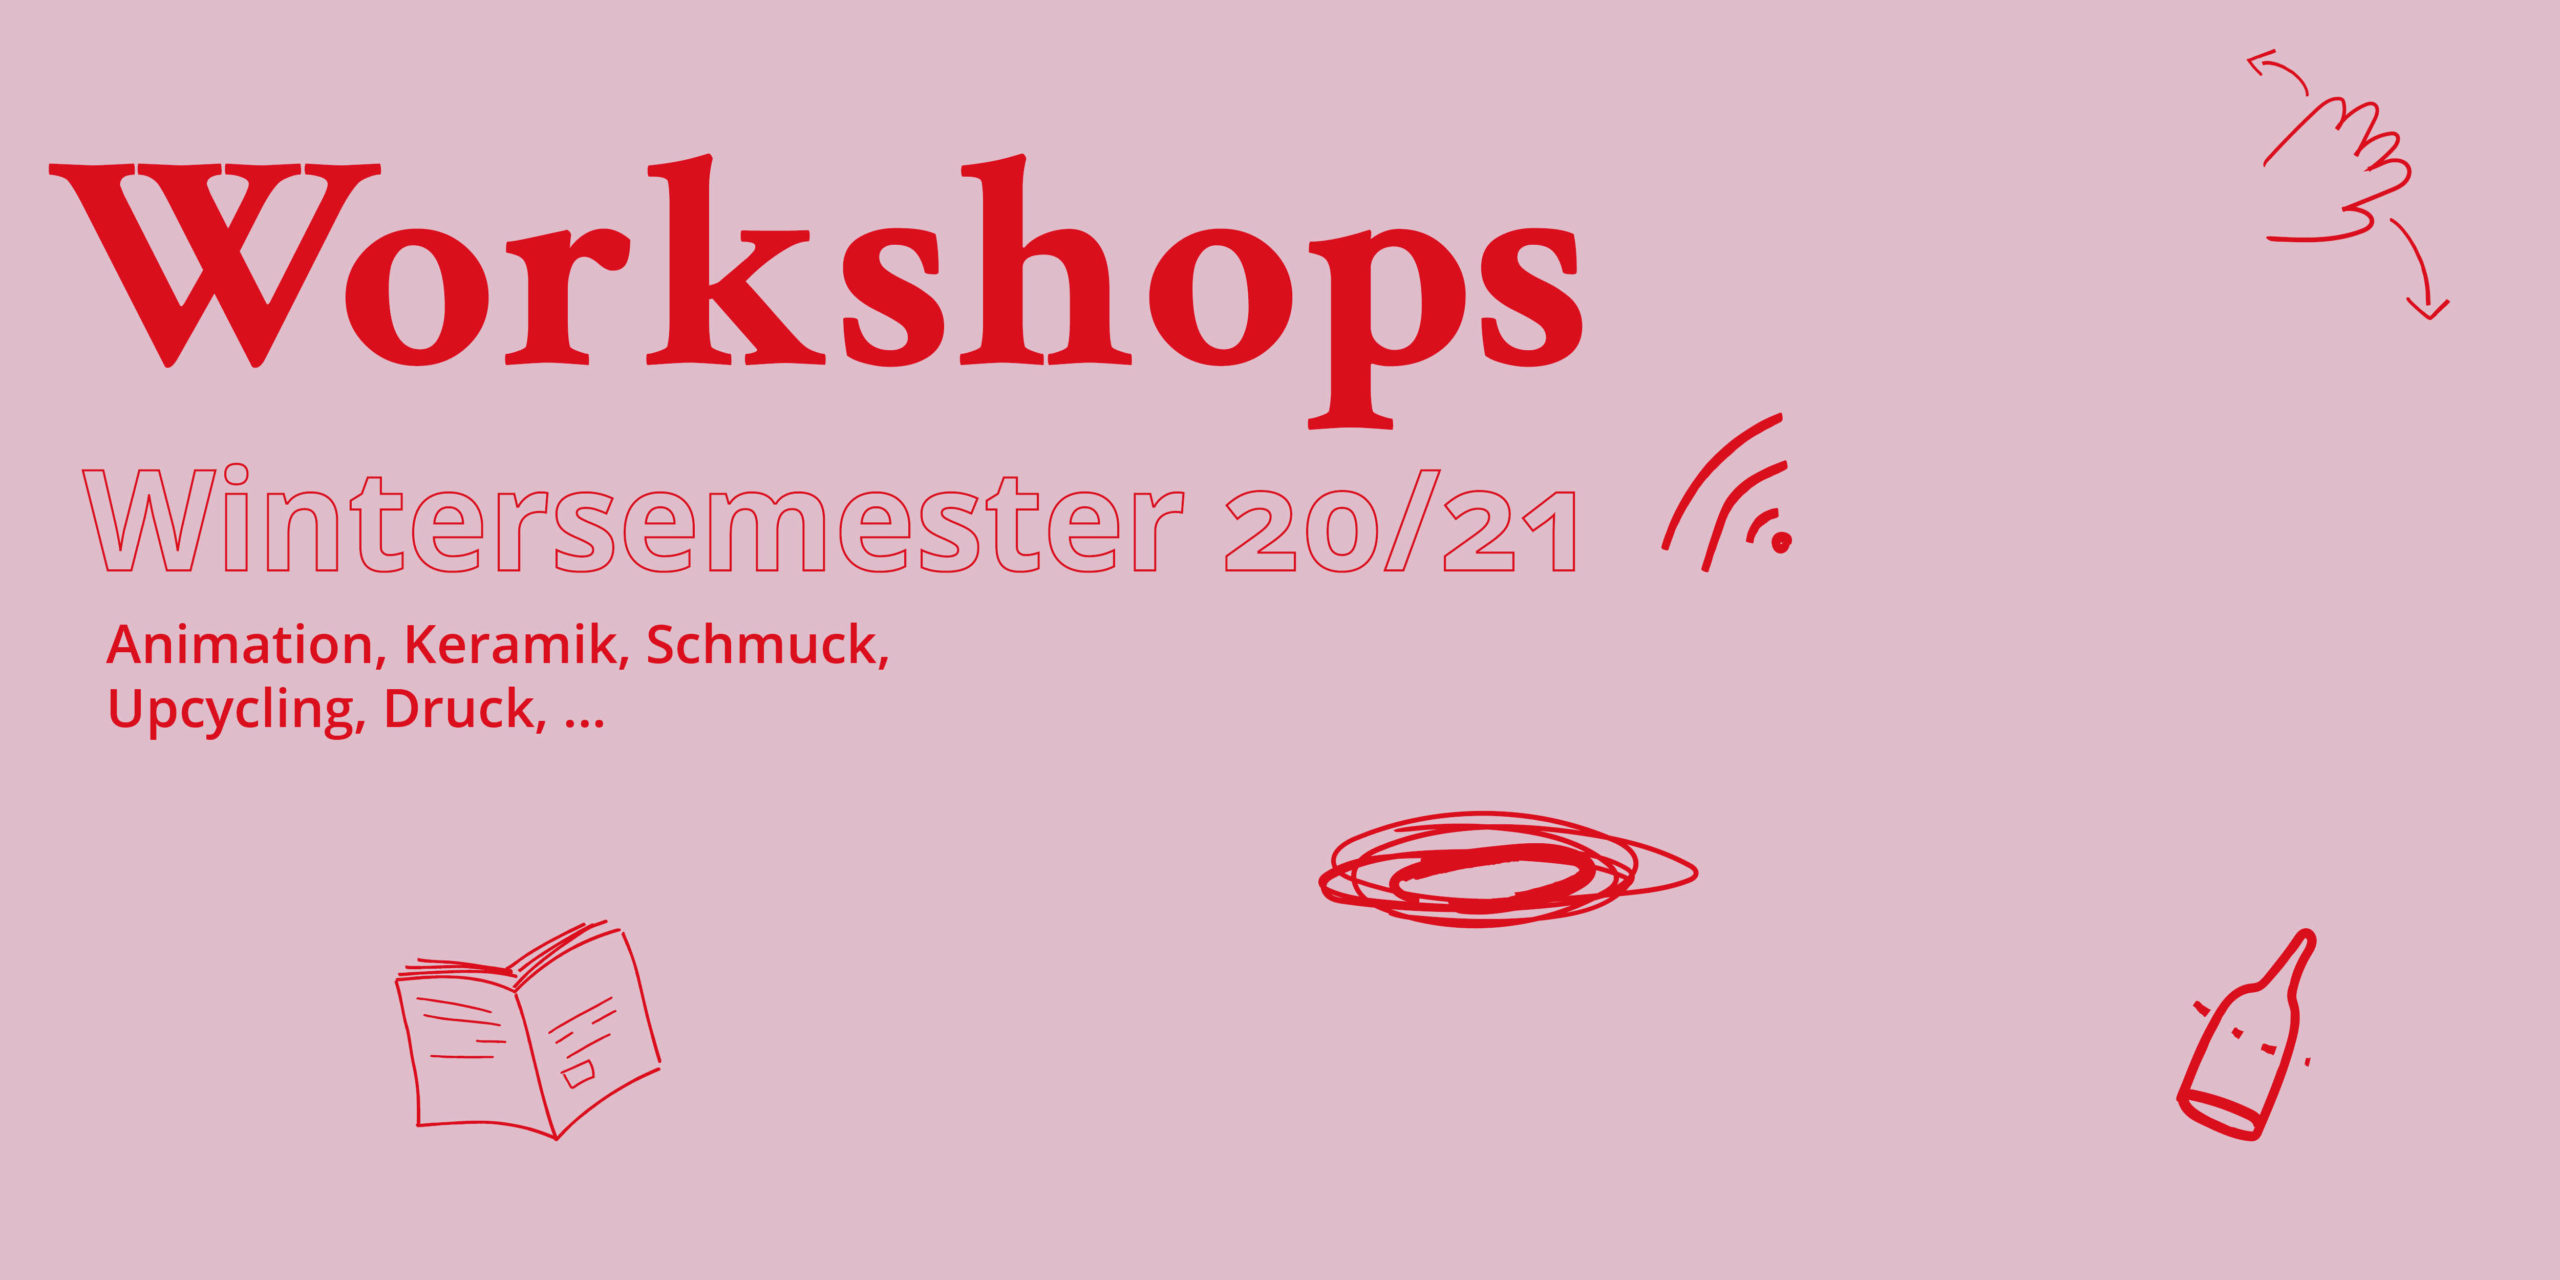 Workshops Wintersemeter 20/21